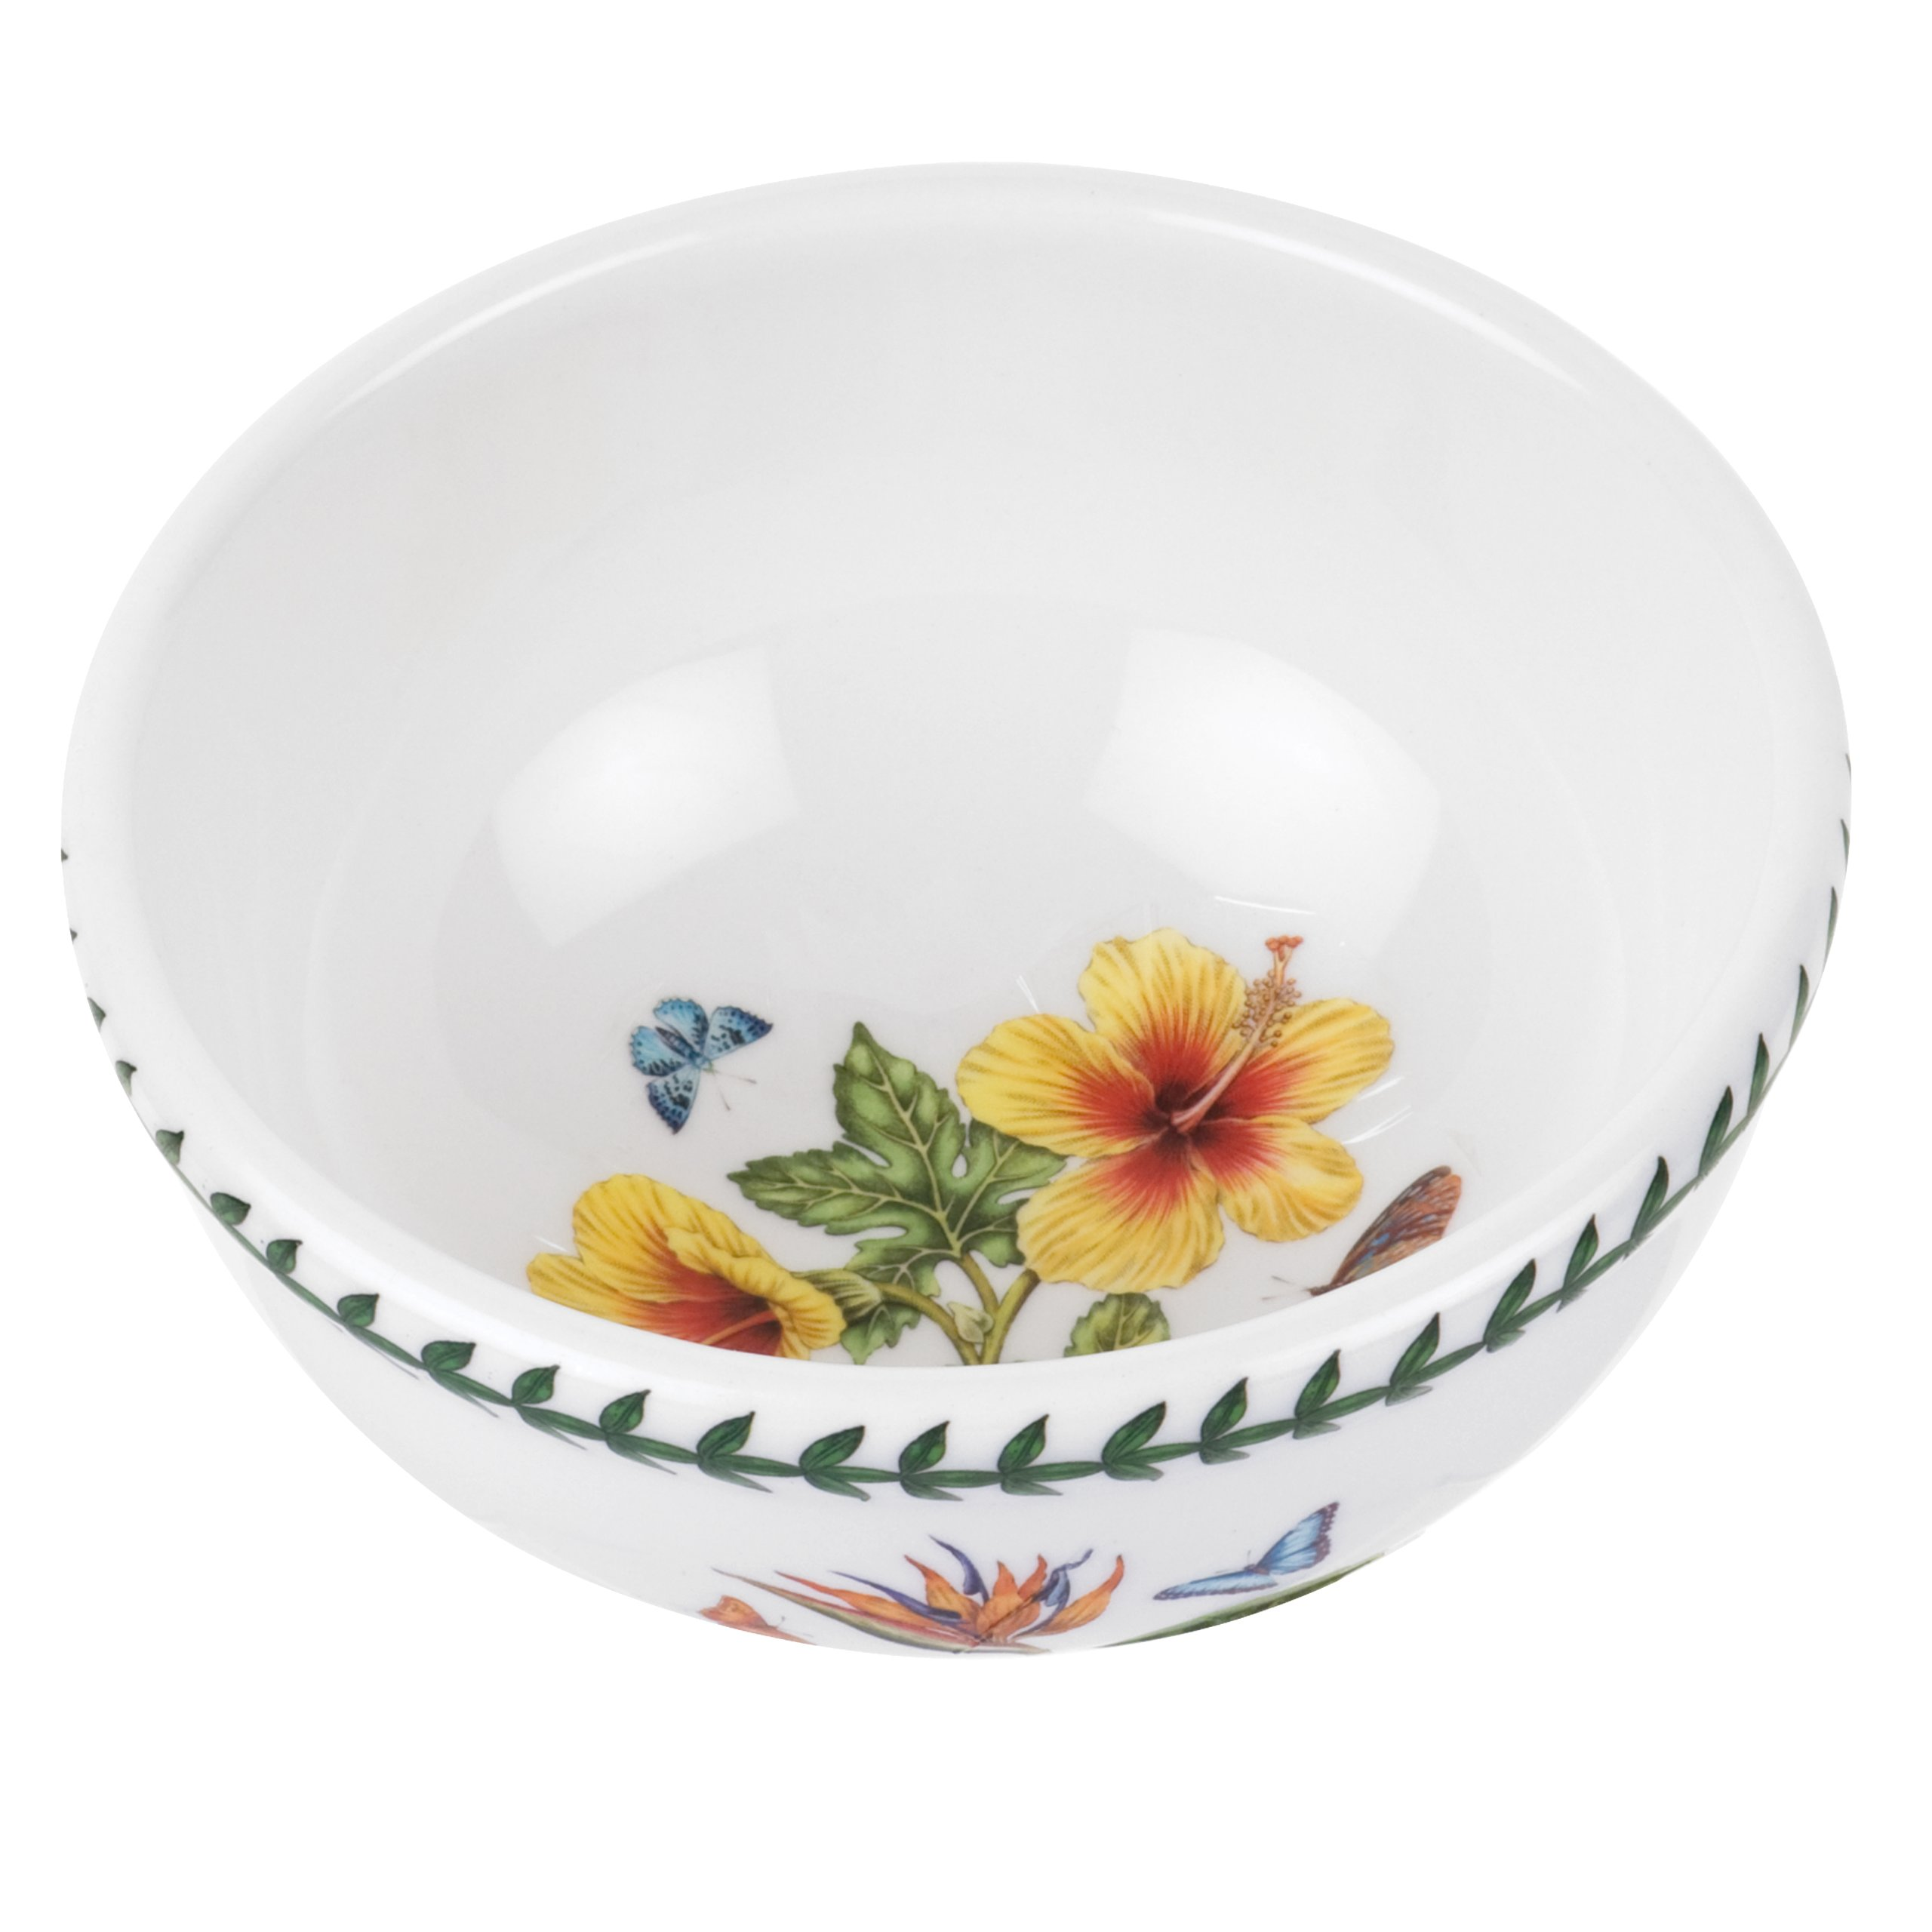 Portmeirion Exotic Botanic Garden Individual Fruit Salad Bowl with Hibiscus